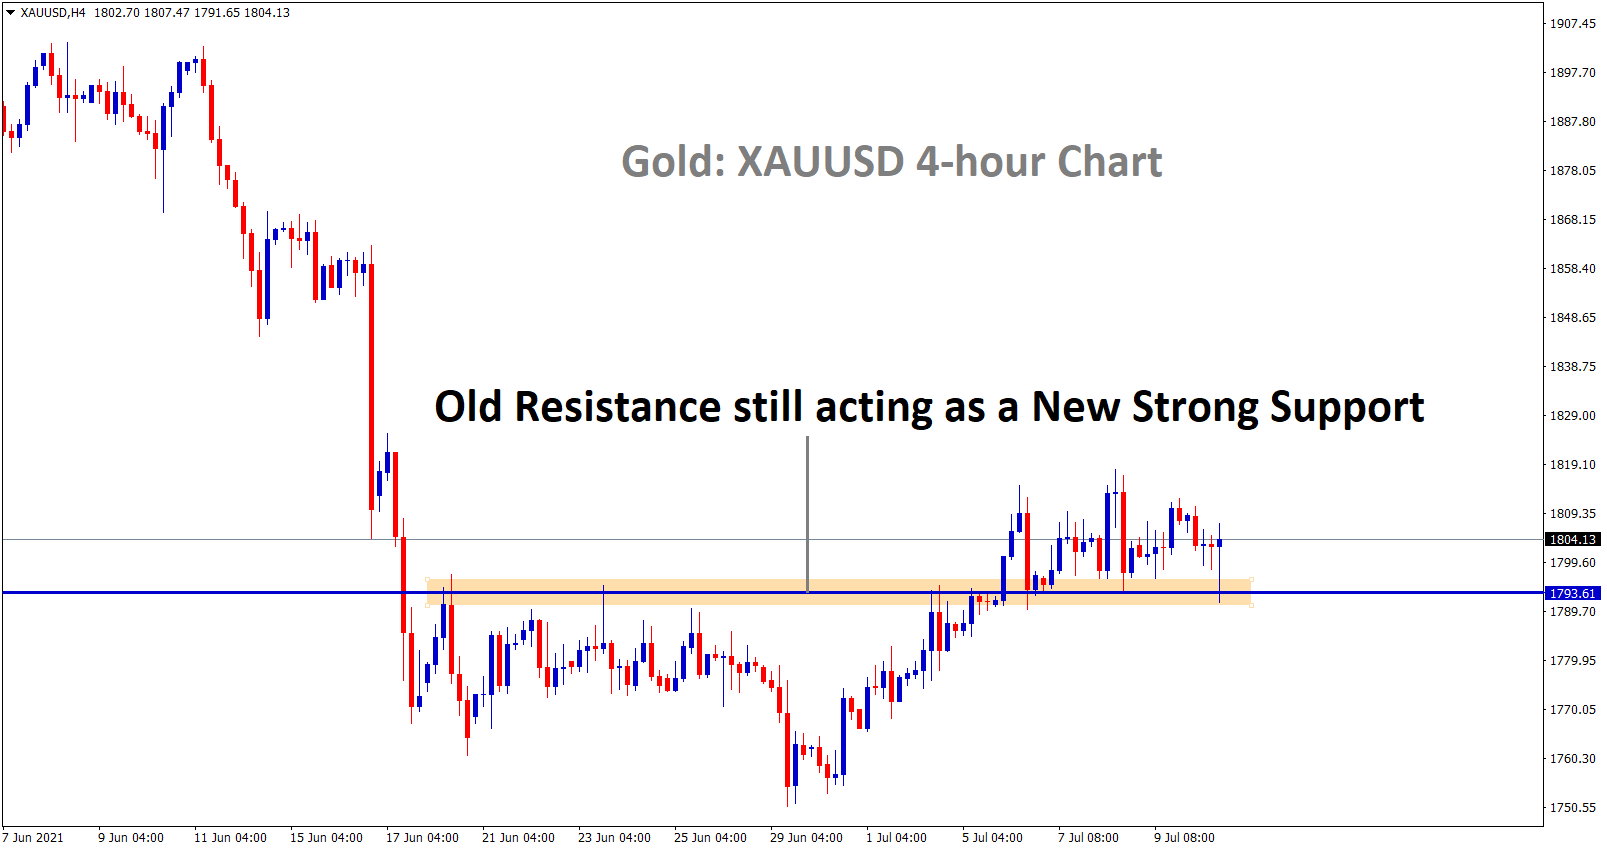 Old resistance still acting as a new strong support on gold price chart